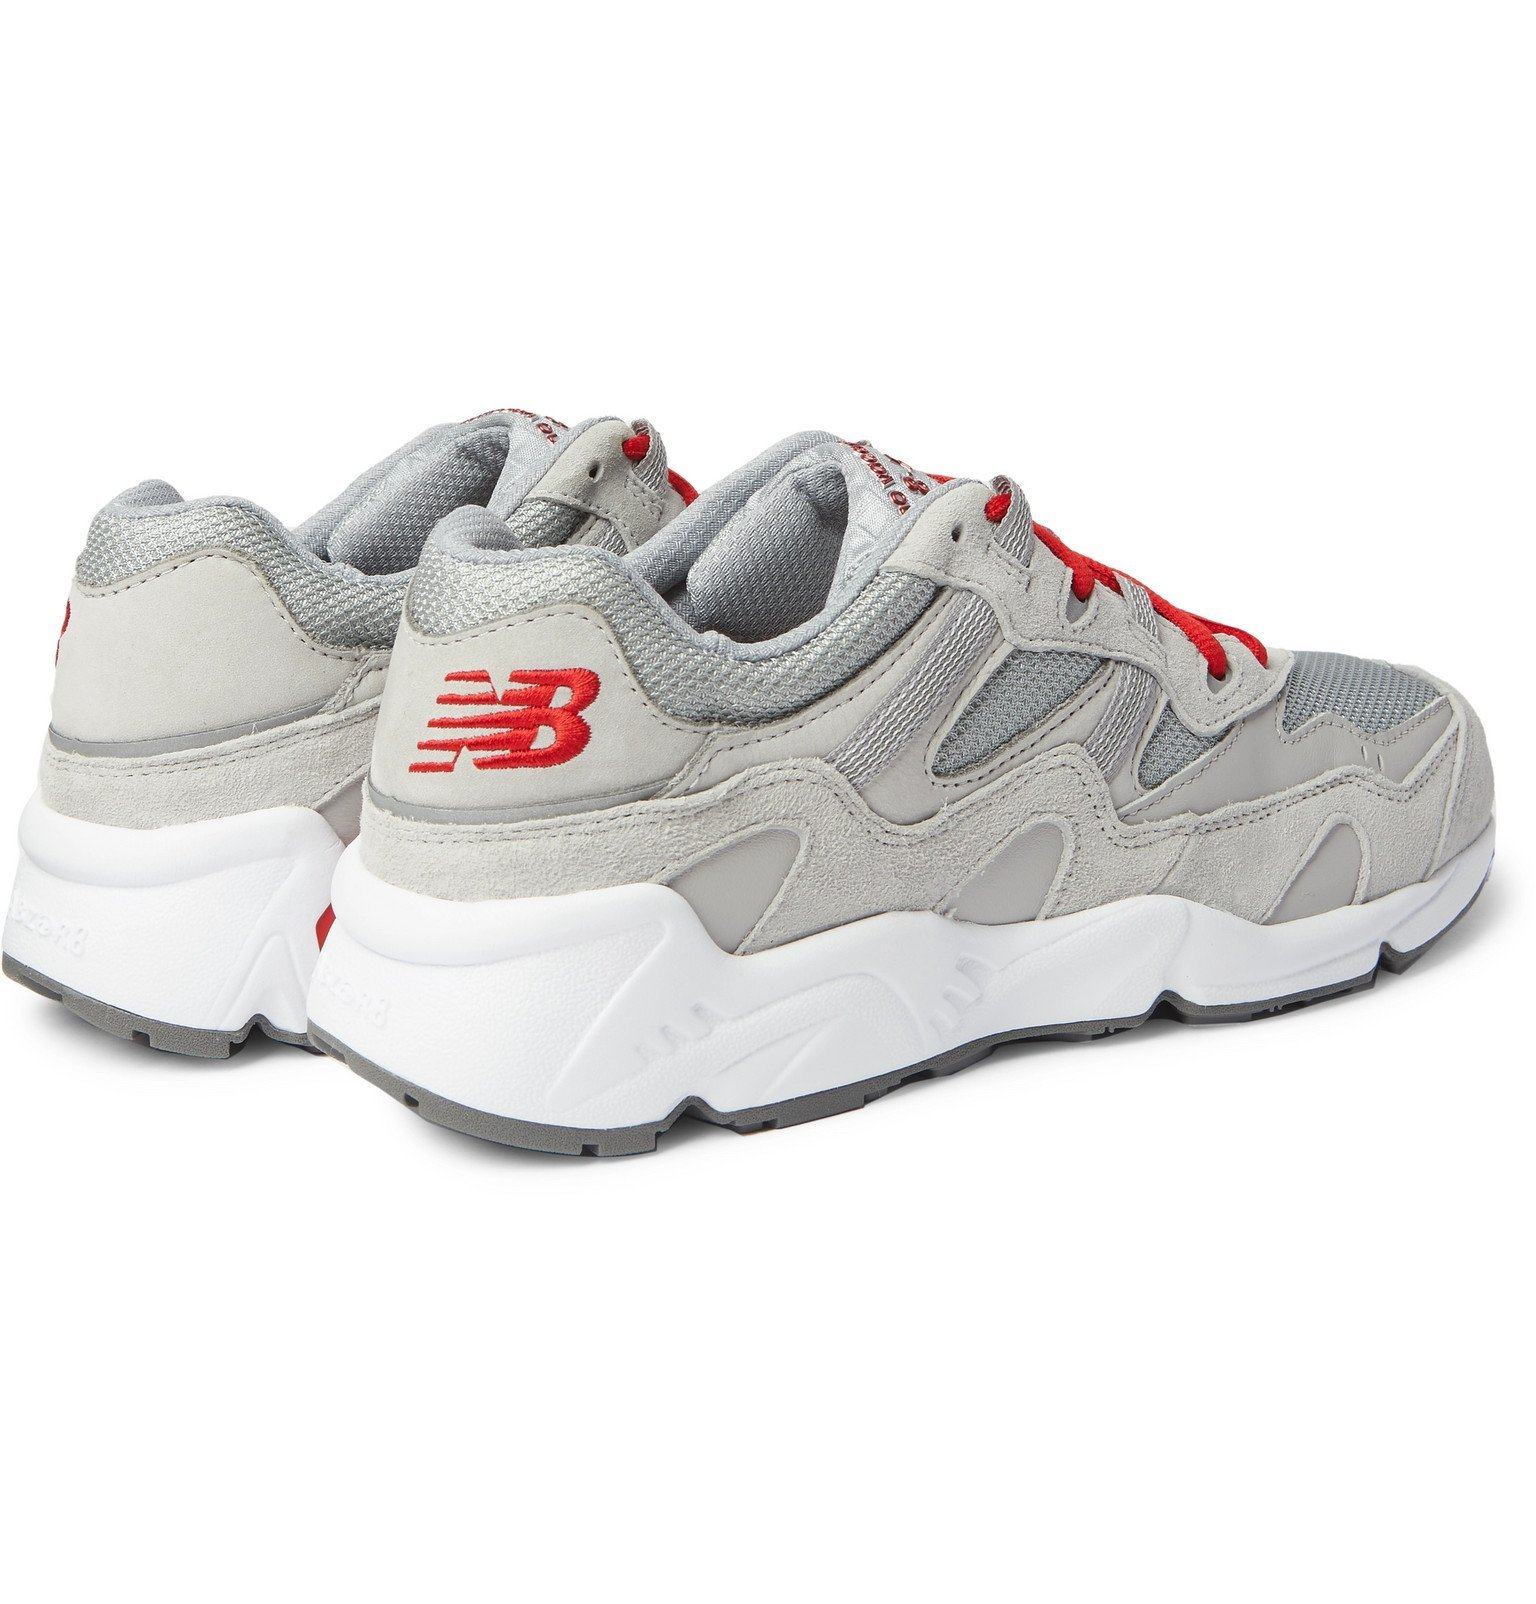 New Balance - No Vacancy Inn ML850 Webbing-Trimmed Suede, Leather and Mesh Sneakers - Gray